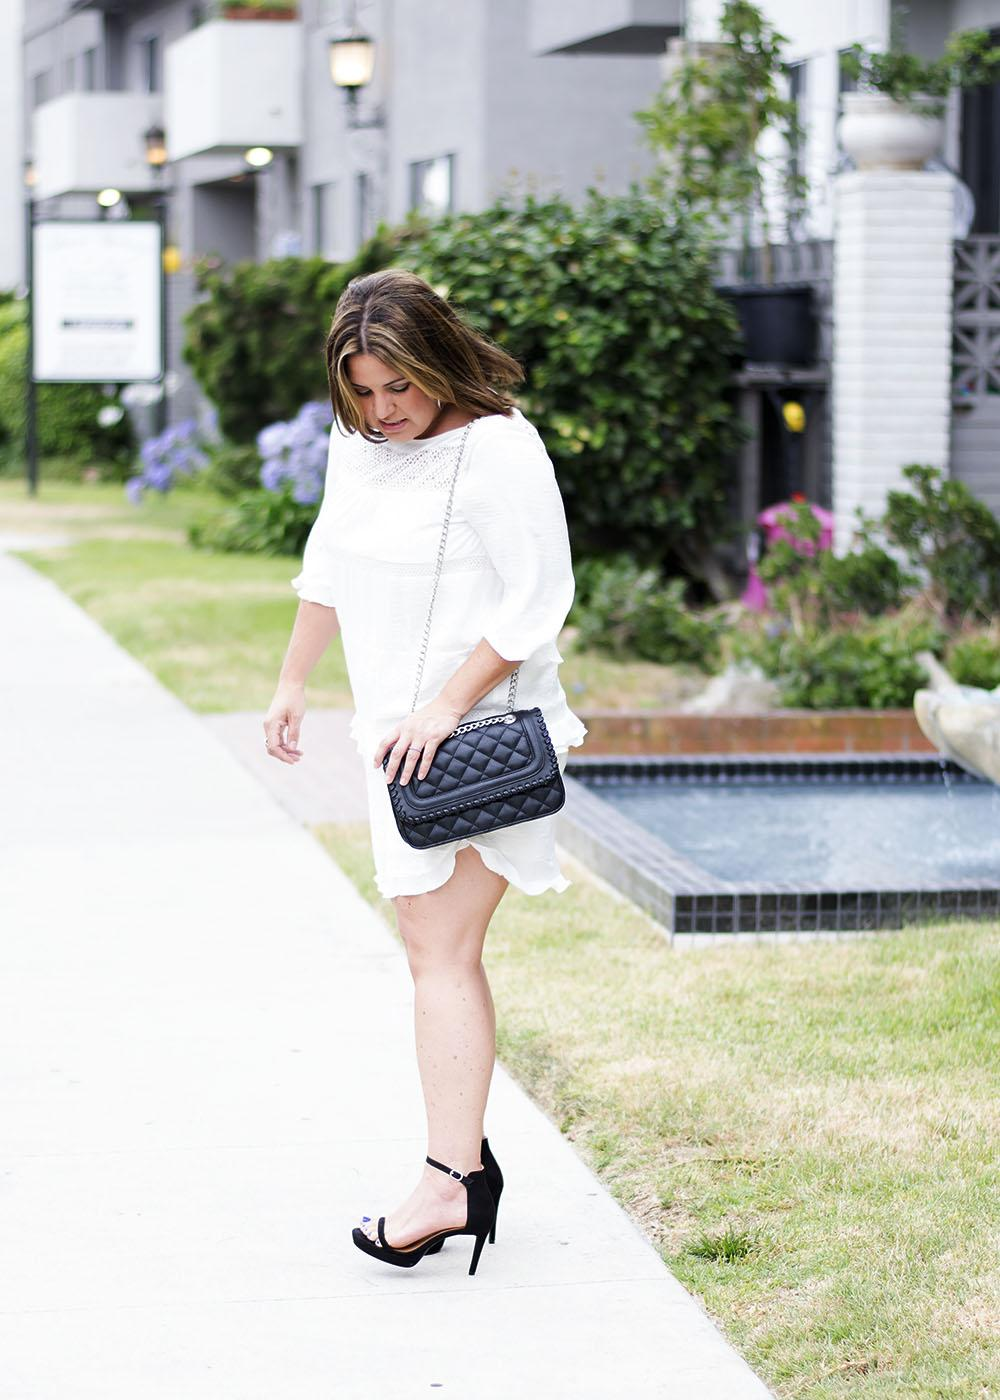 Dressy Outfit Los Angeles Fashion Street Style Blogger Personal Stylist White Ruffled Dress Who What Wear for Target 0599